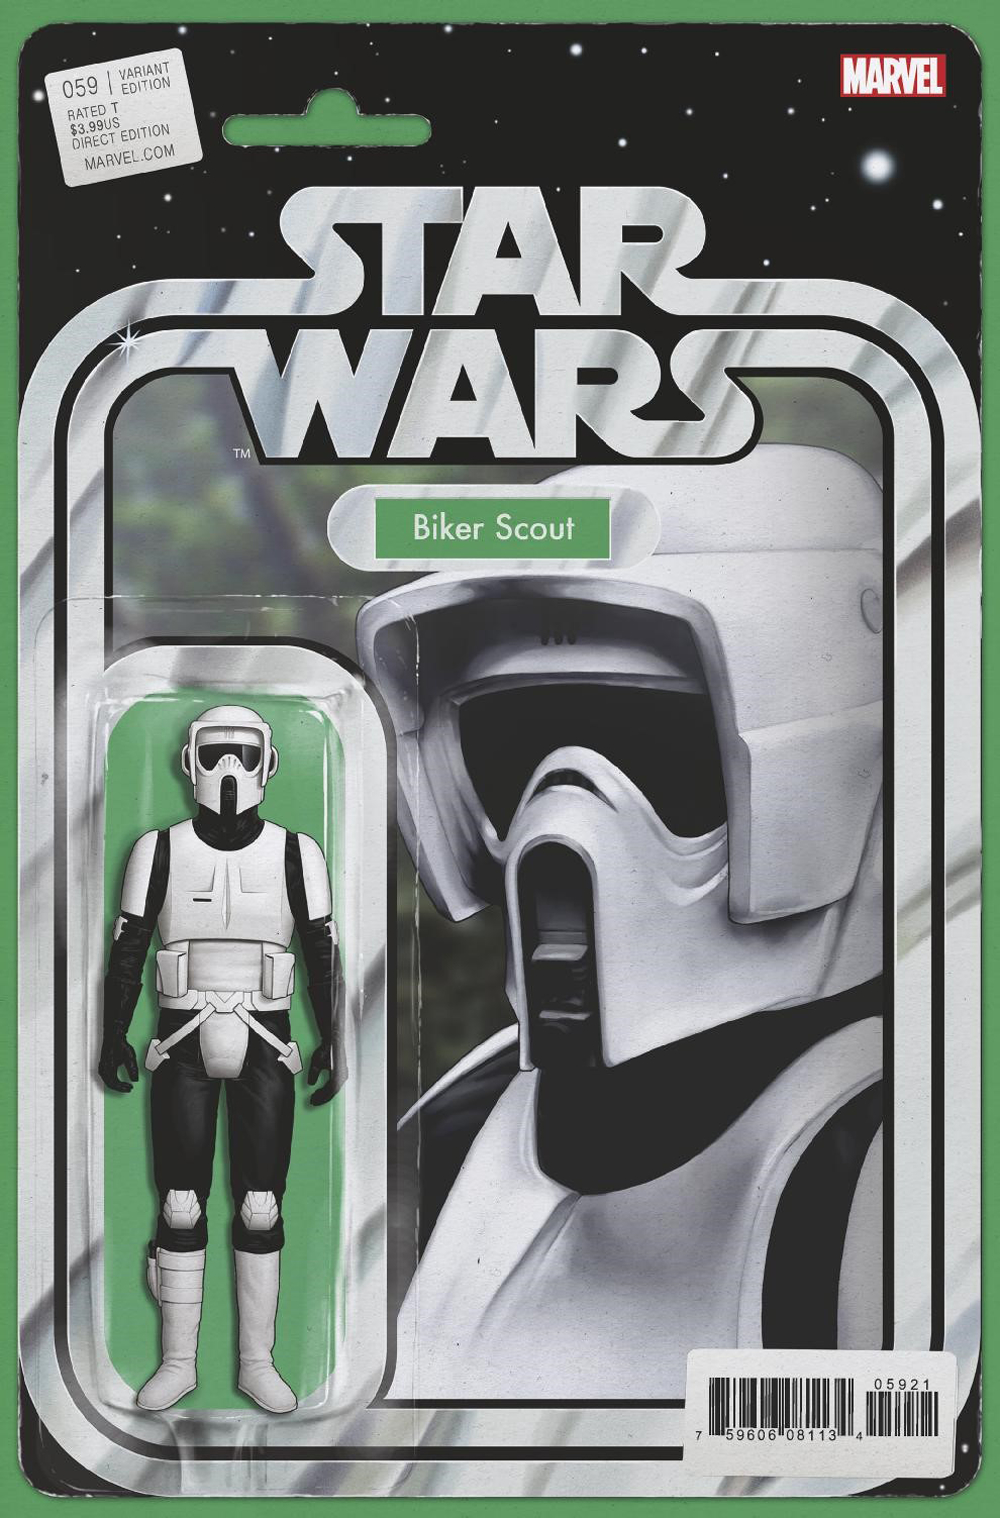 Star Wars #59 (Action Figure Variant Cover) (09.01.2019)